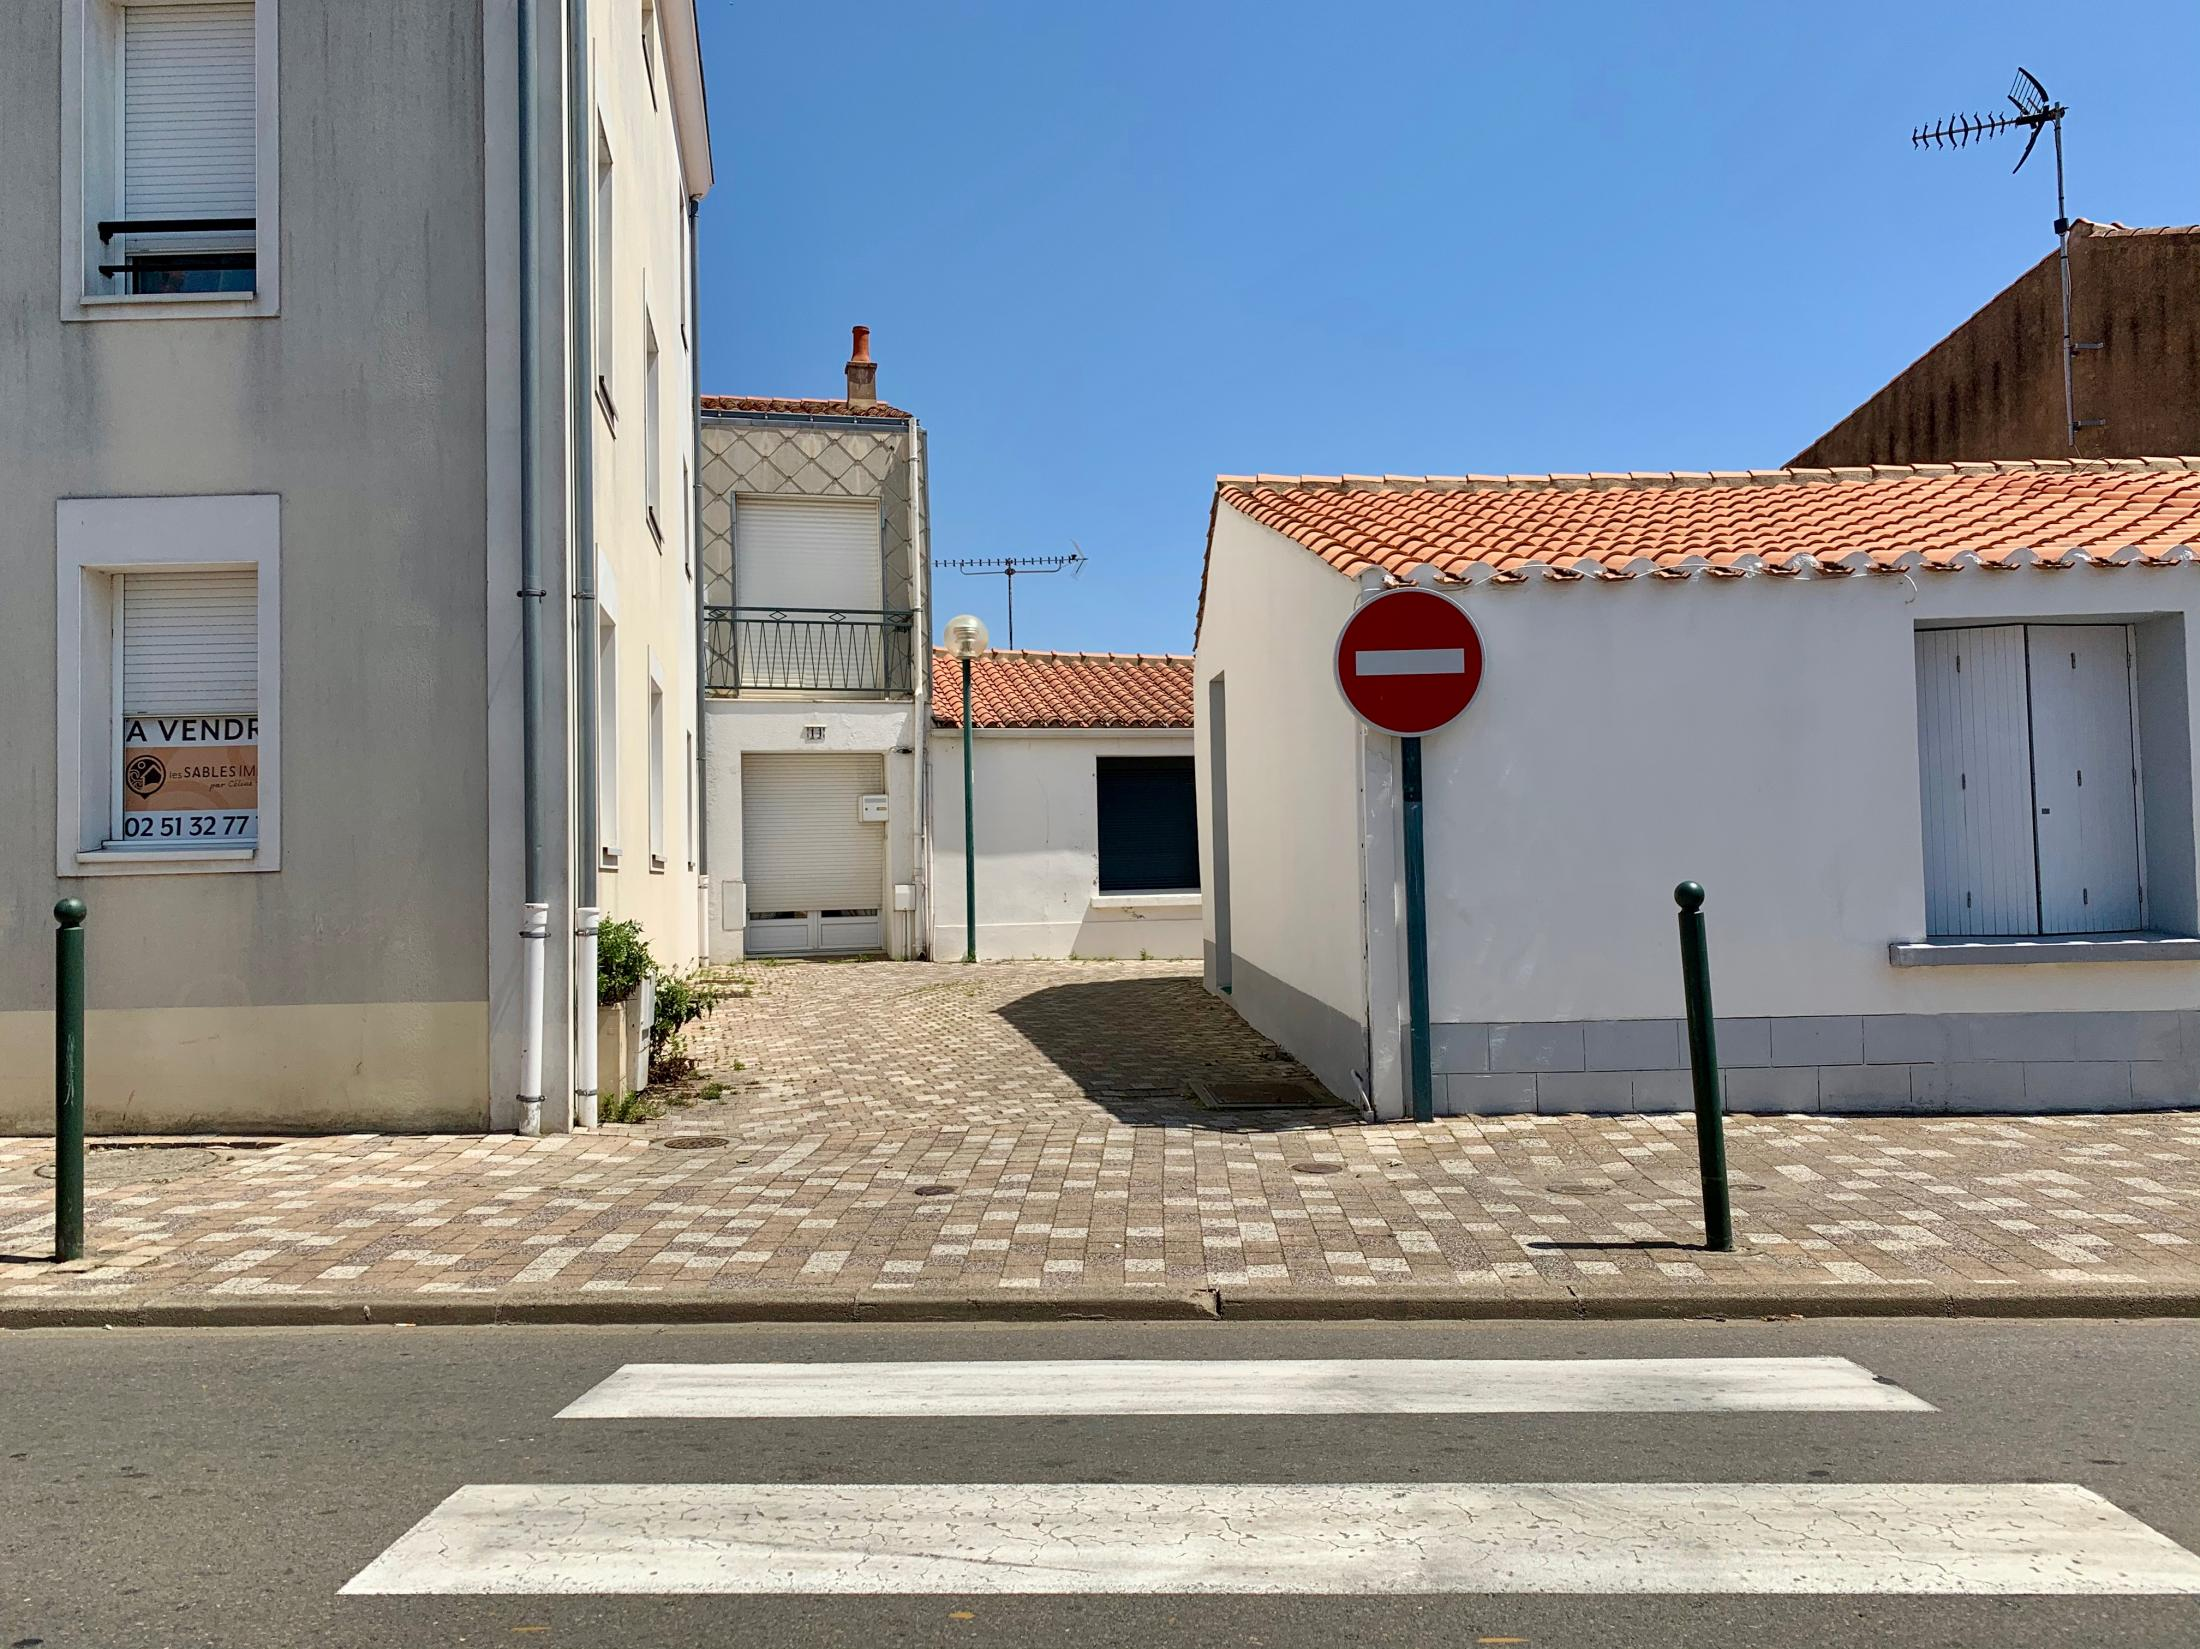 Olonne-sur-Mer, Pays de la Loire, France. 2019. Several buildings with northwestern french design. The white walls reduce the heat in the buildings. A friend I was visiting was showing me around his town.